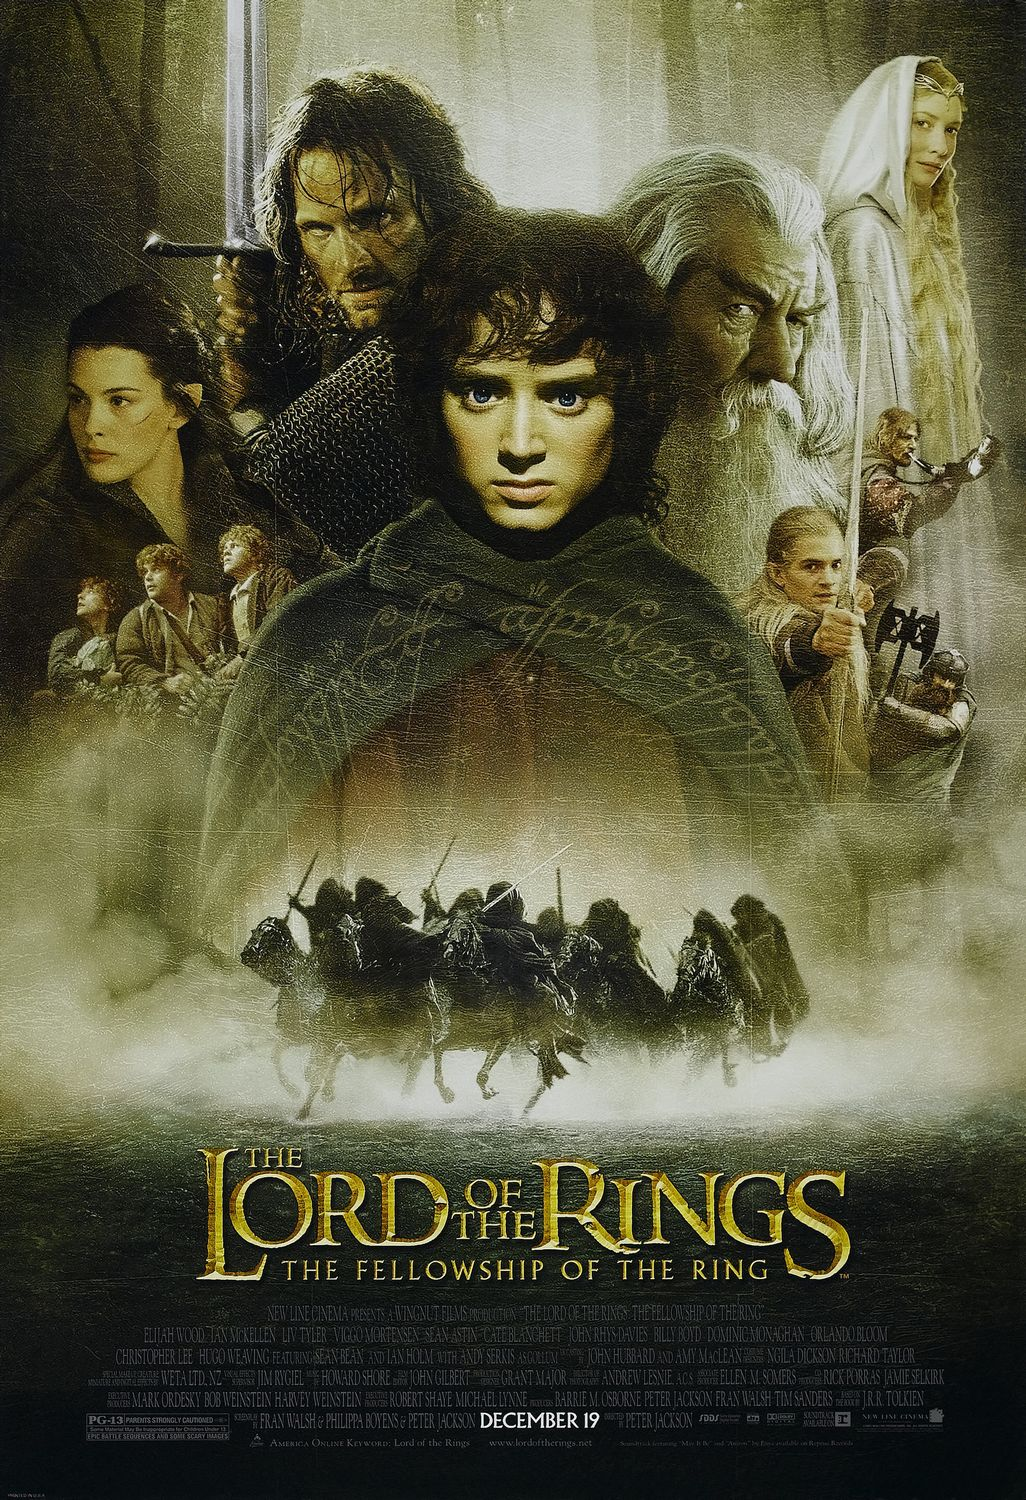 the-lord-of-the-rings-1.jpg